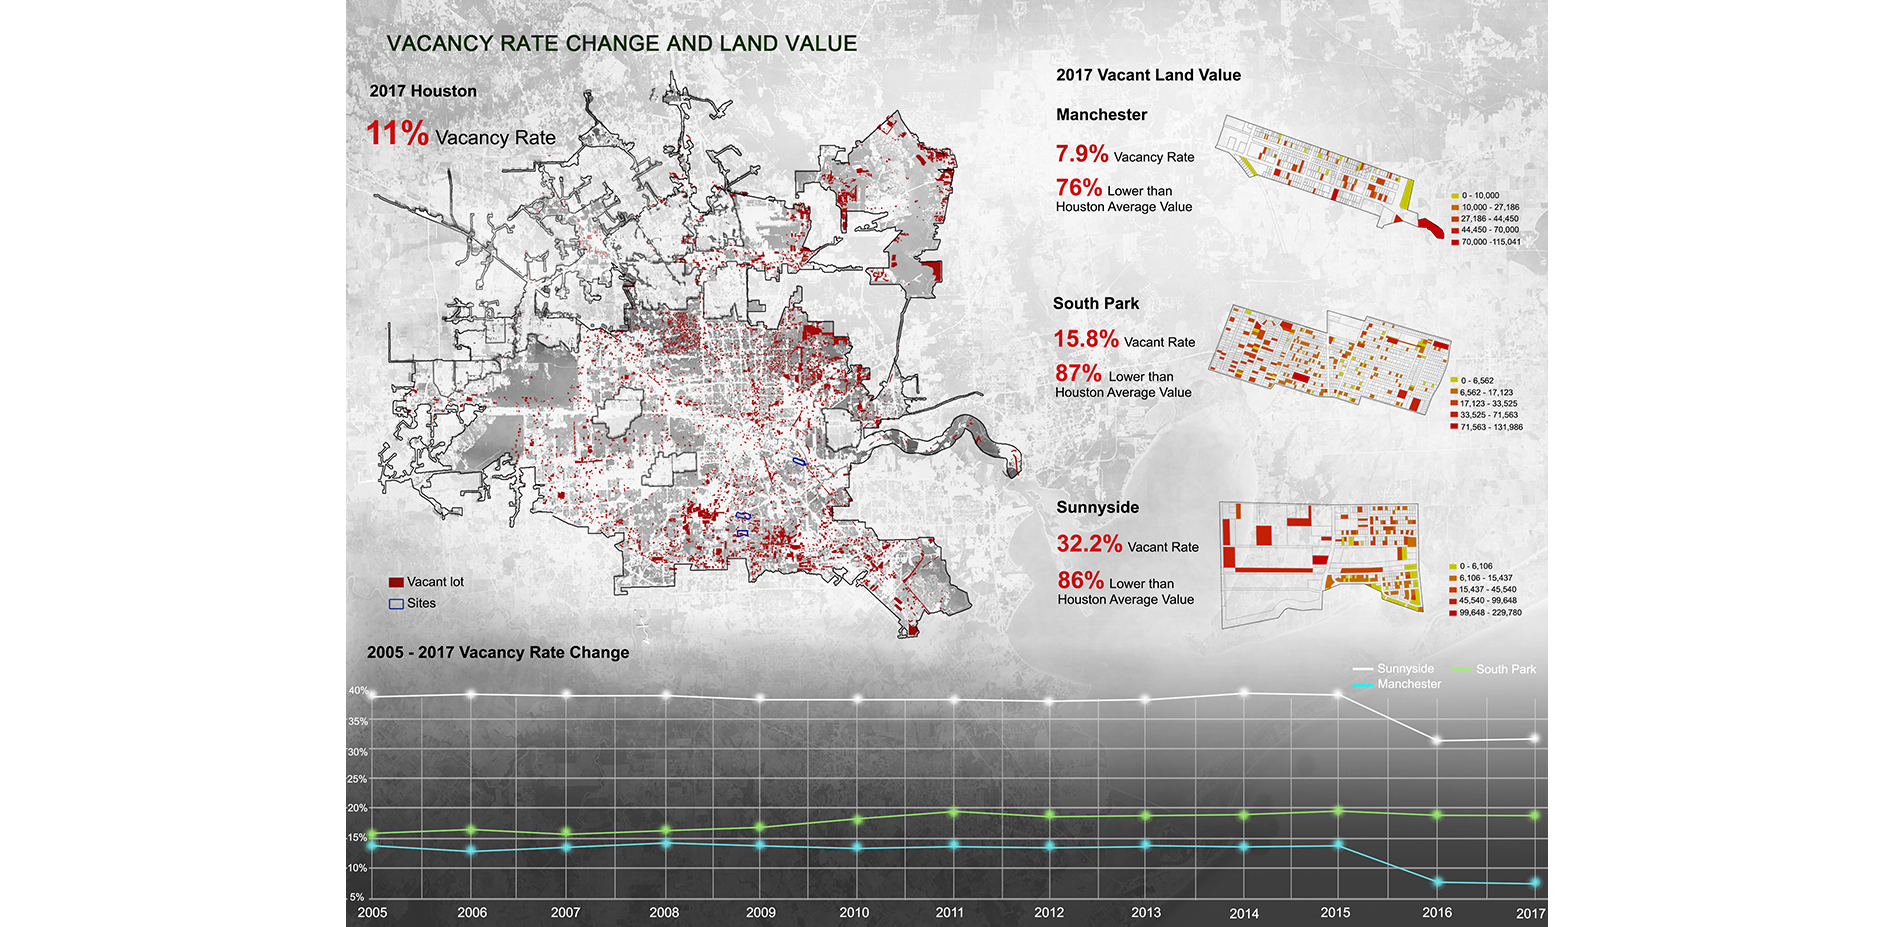 Vacancy rate change and land value